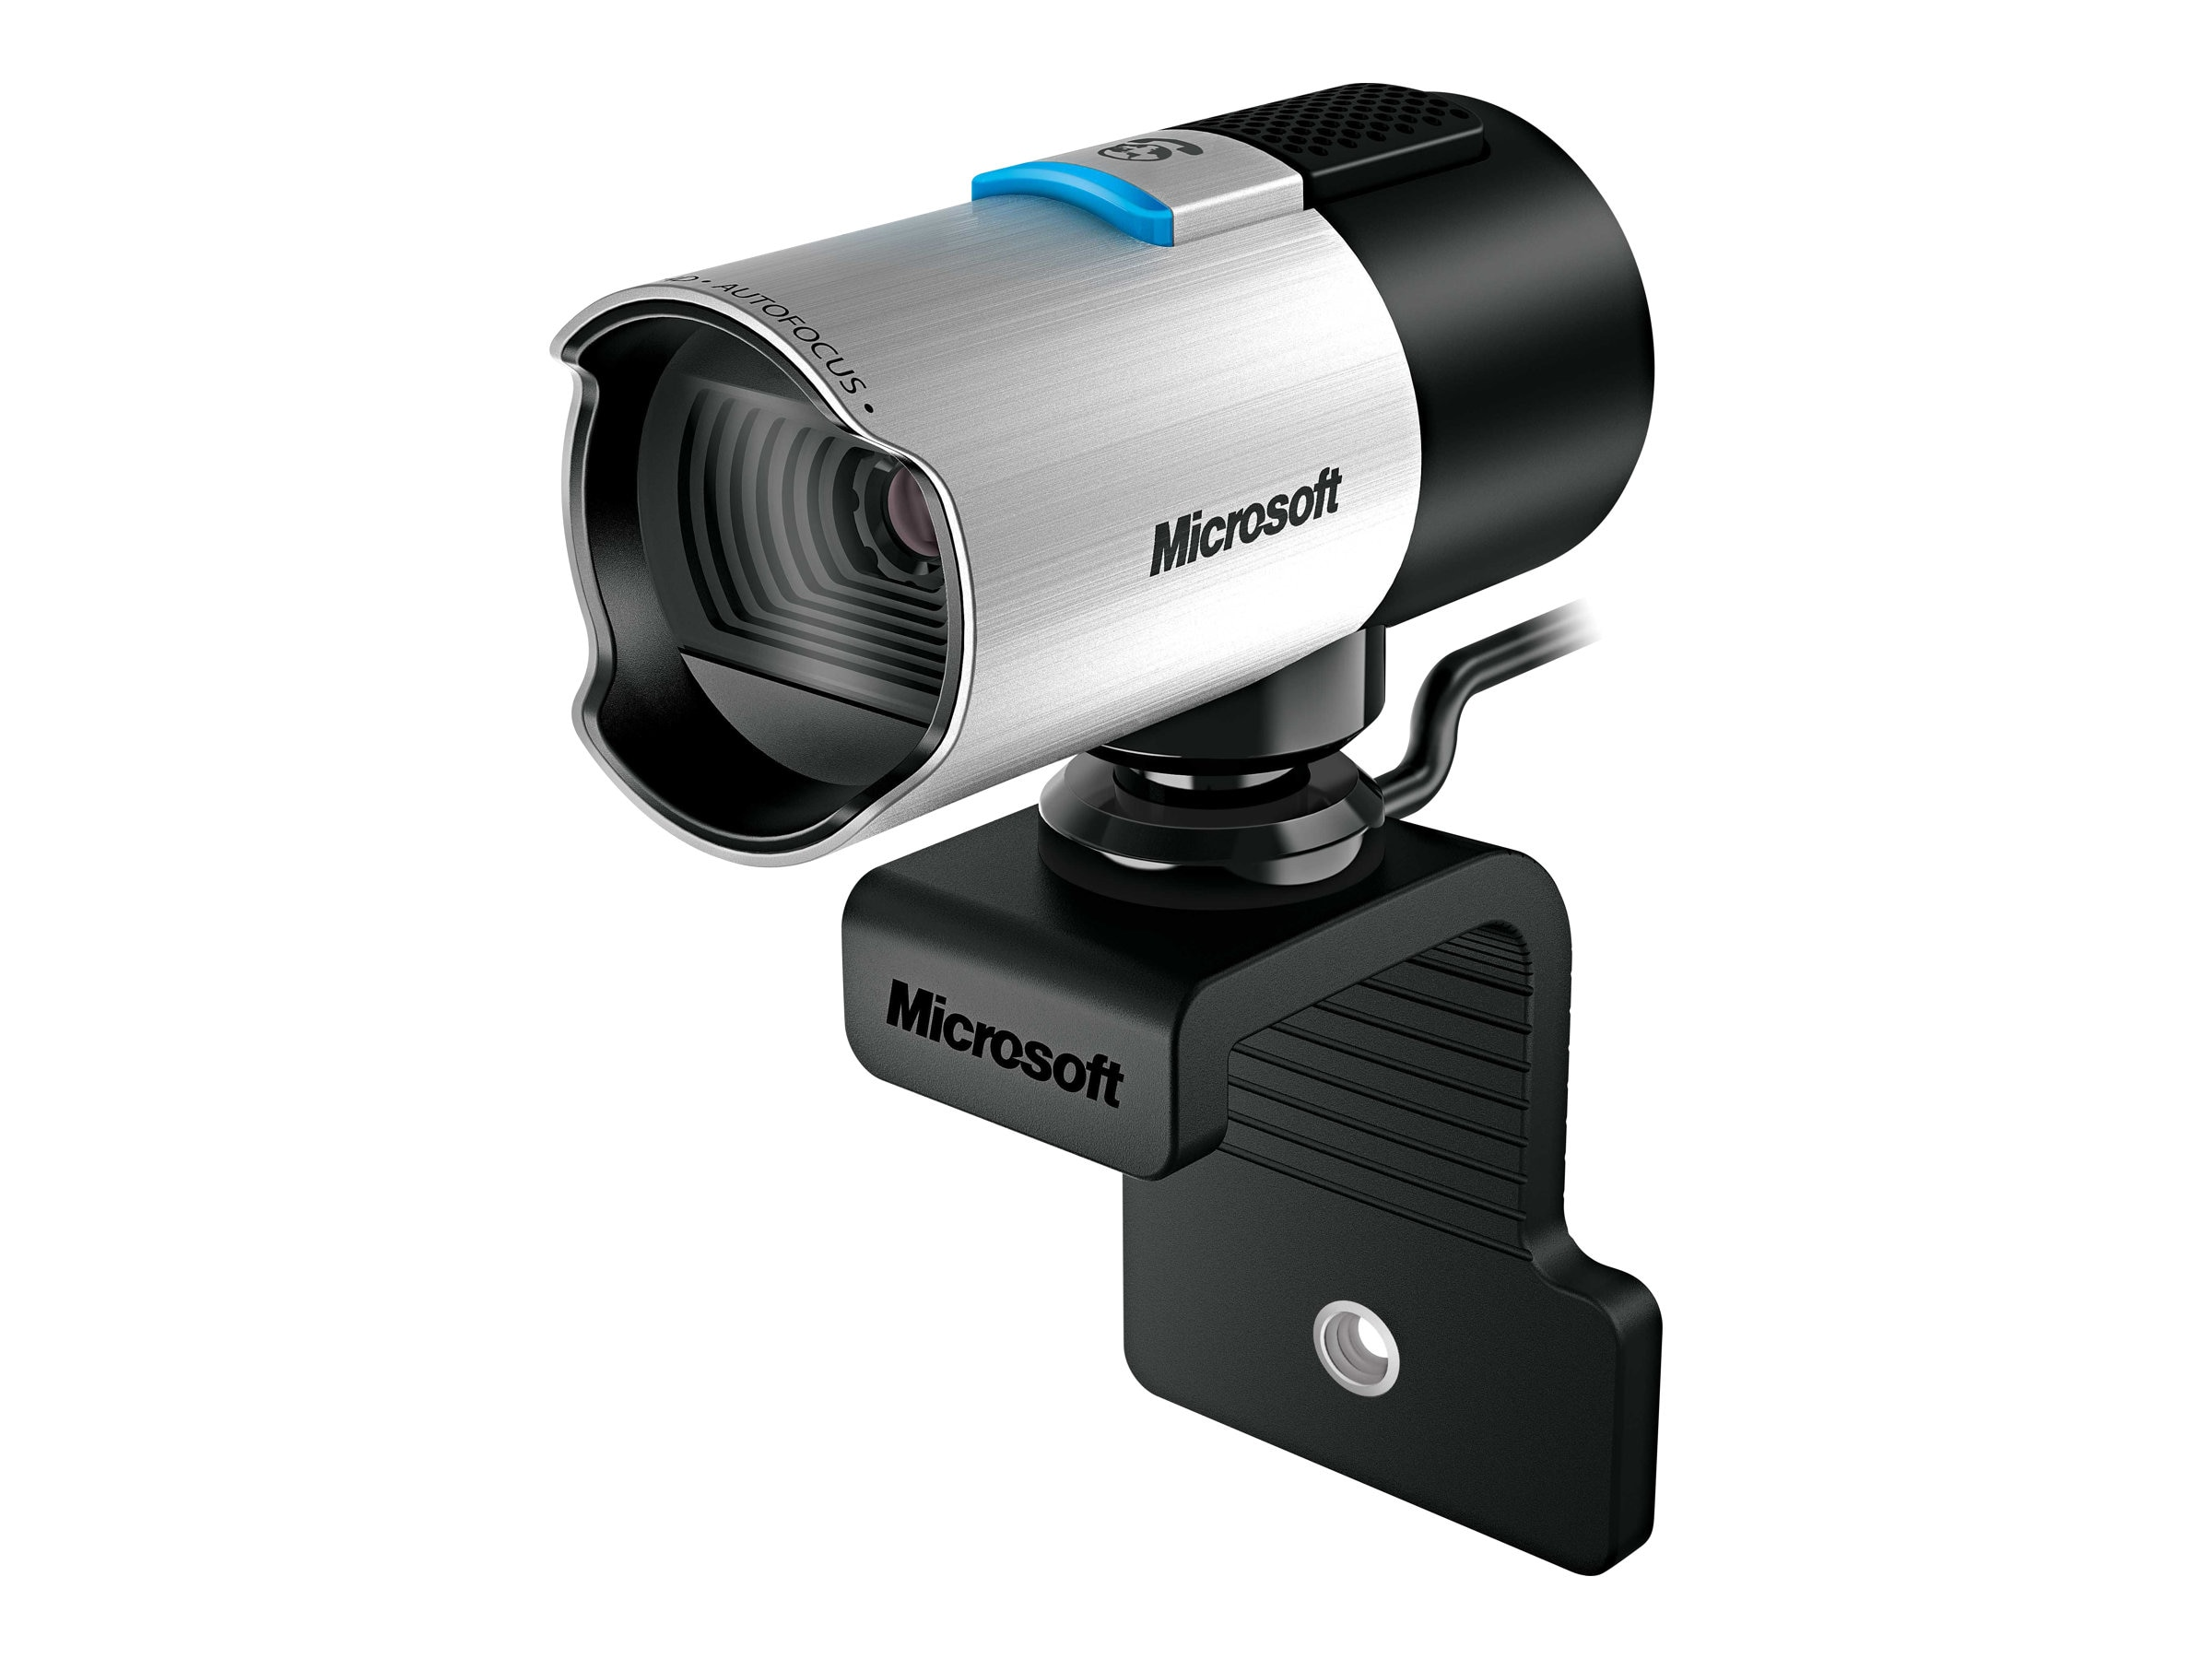 Microsoft PL2 Lifecam Studio Webcam, Q2F-00013